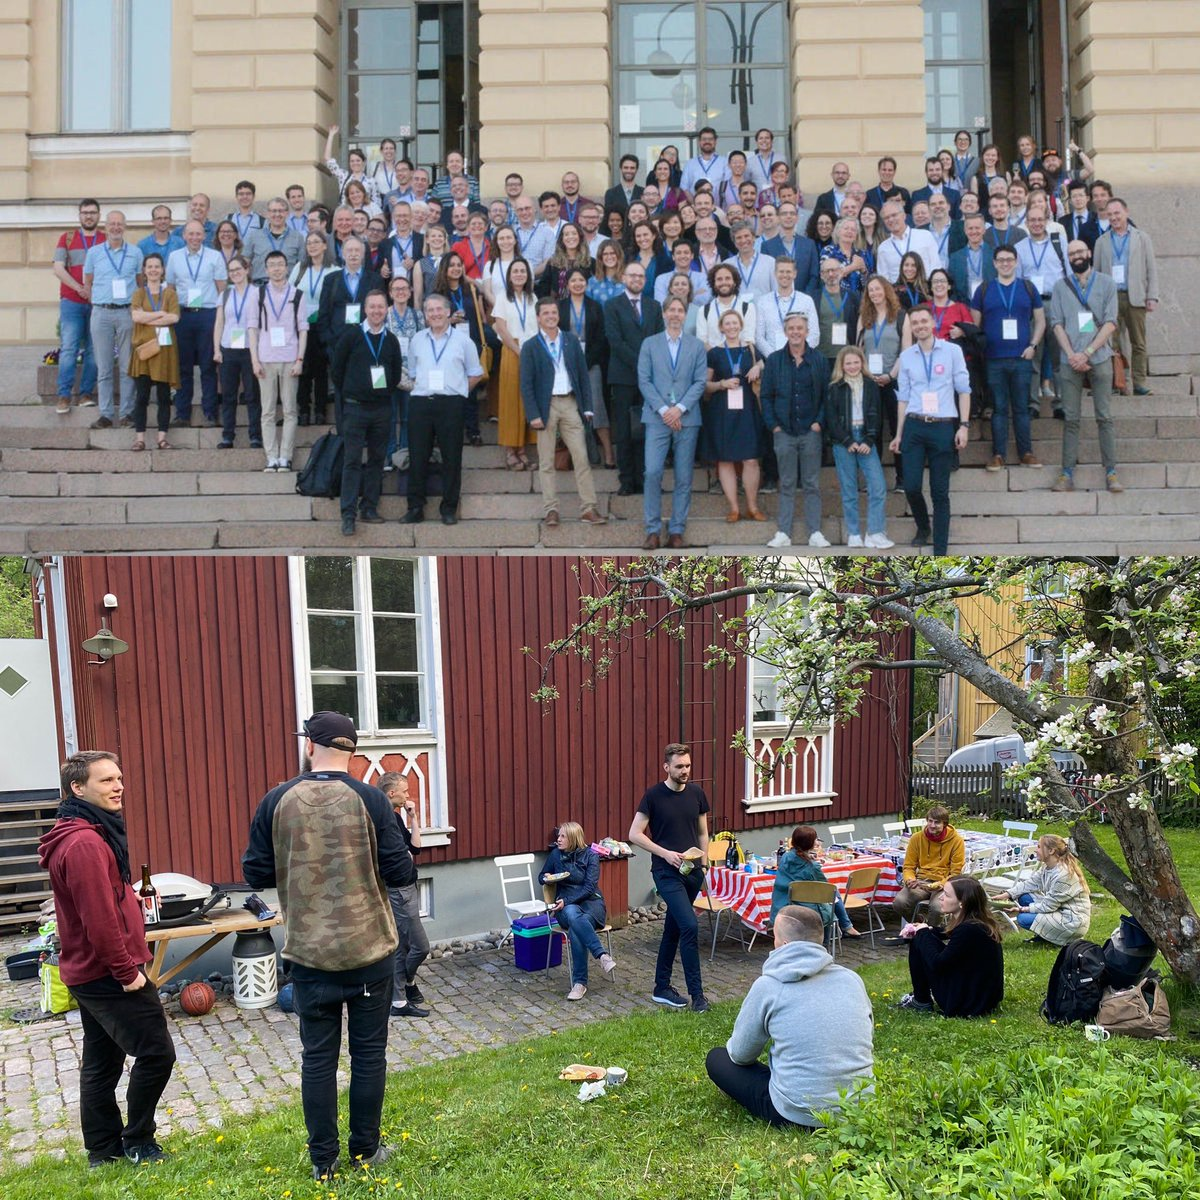 Exactly a year ago we were thrilled to meet colleagues at #NECTAR2019 conference at summery @helsinkiuni. This year, the circles are smaller and more local at @digigeolab. But after the long distant working period it feels super special to see colleagues face to face again. ❤️